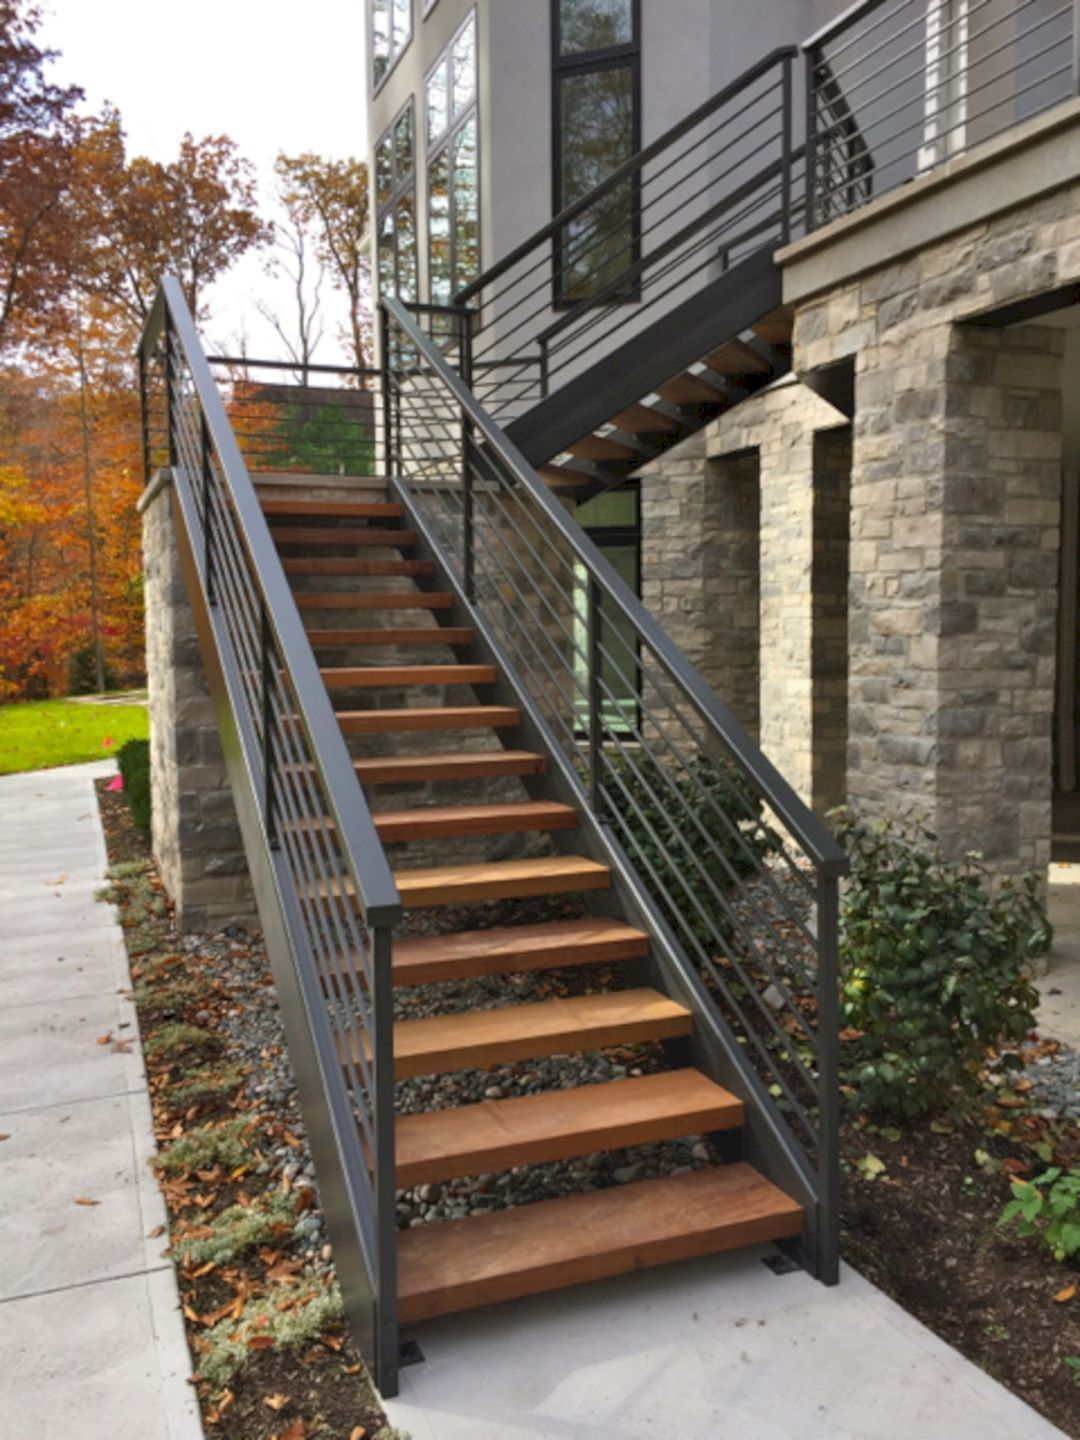 Epic 25 Marvelous Outdoor Stairway Ideas For Creative Home Design   Stairs Design Outside Home   Single   Steel   Length   Contemporary Exterior   Stairway Outside